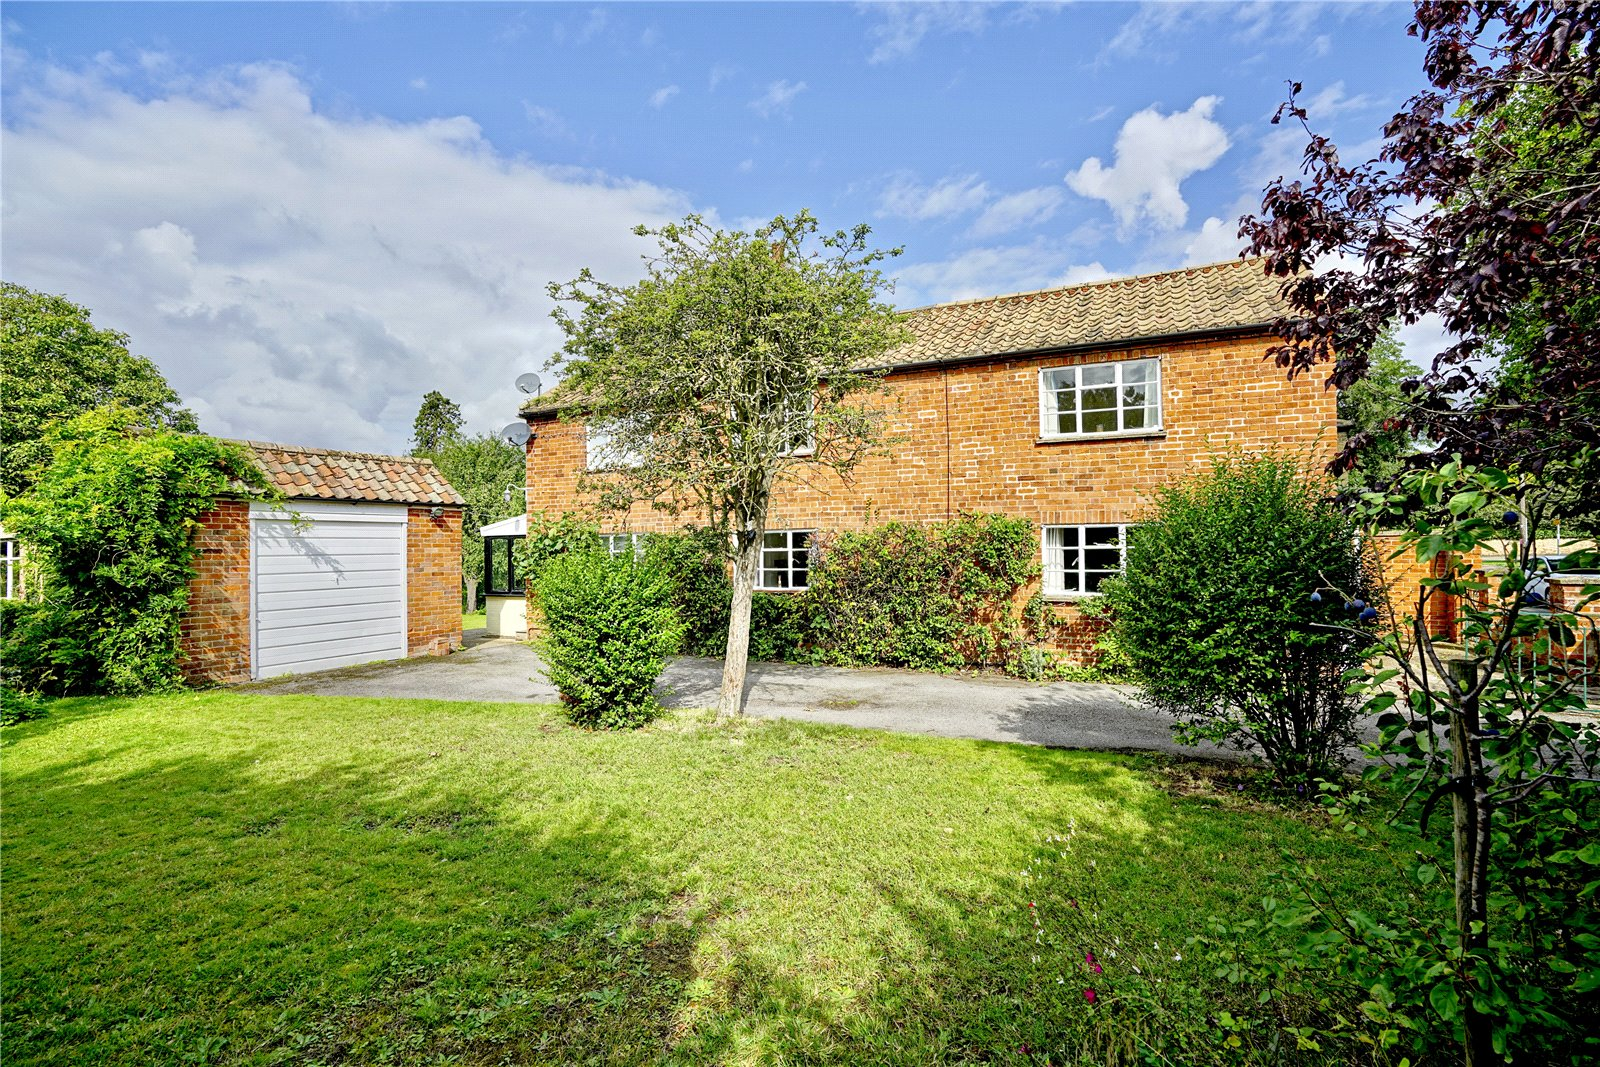 4 bed house for sale in Buckden, Hunts End, PE19 5SU - Property Image 1